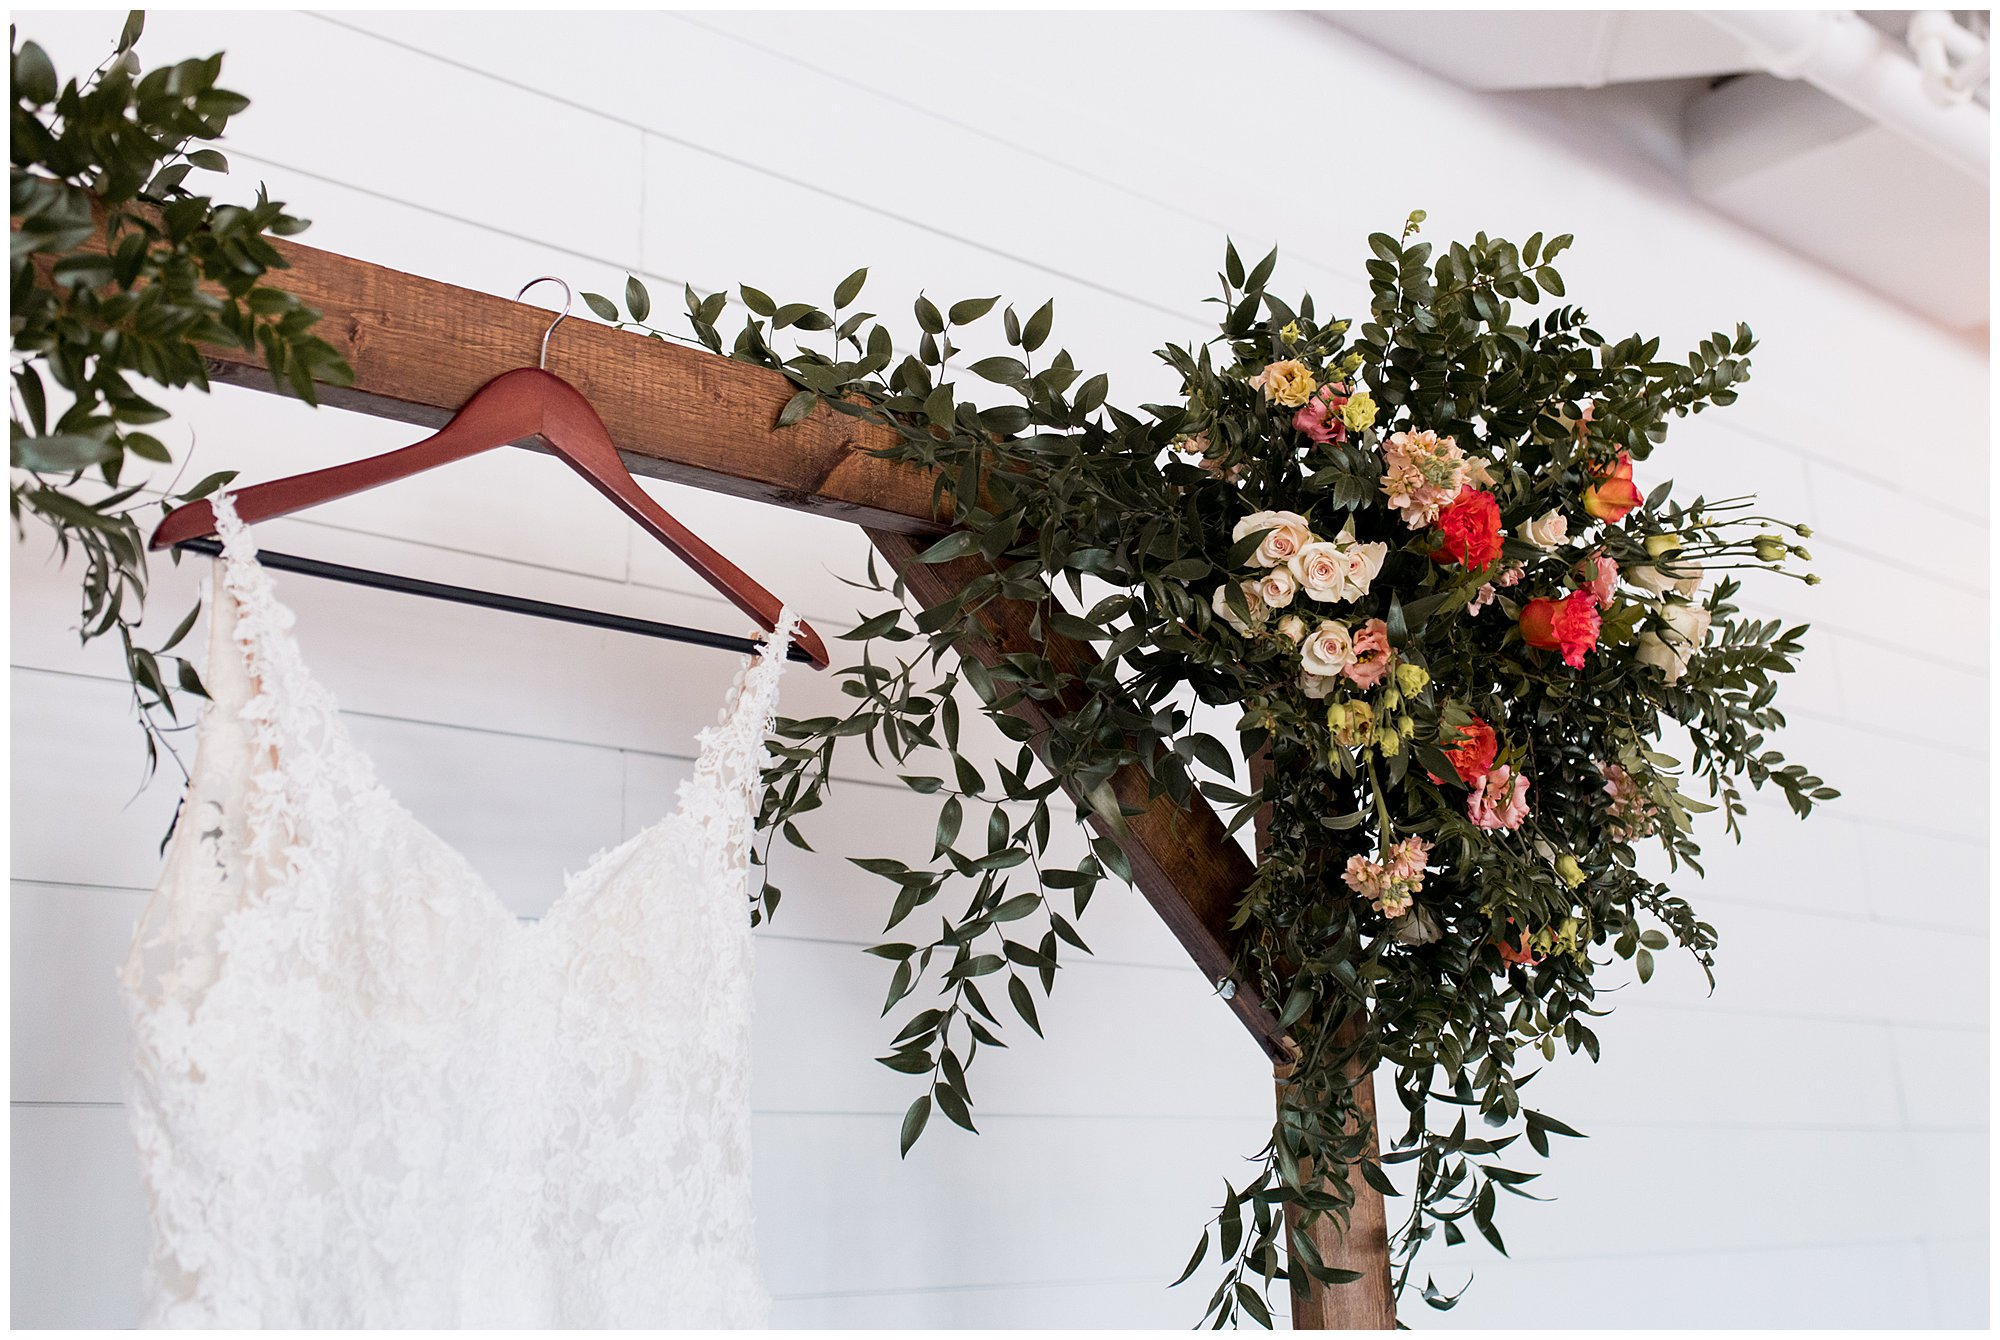 Archway florals by The Flower Boys at BASH venue in Carmel